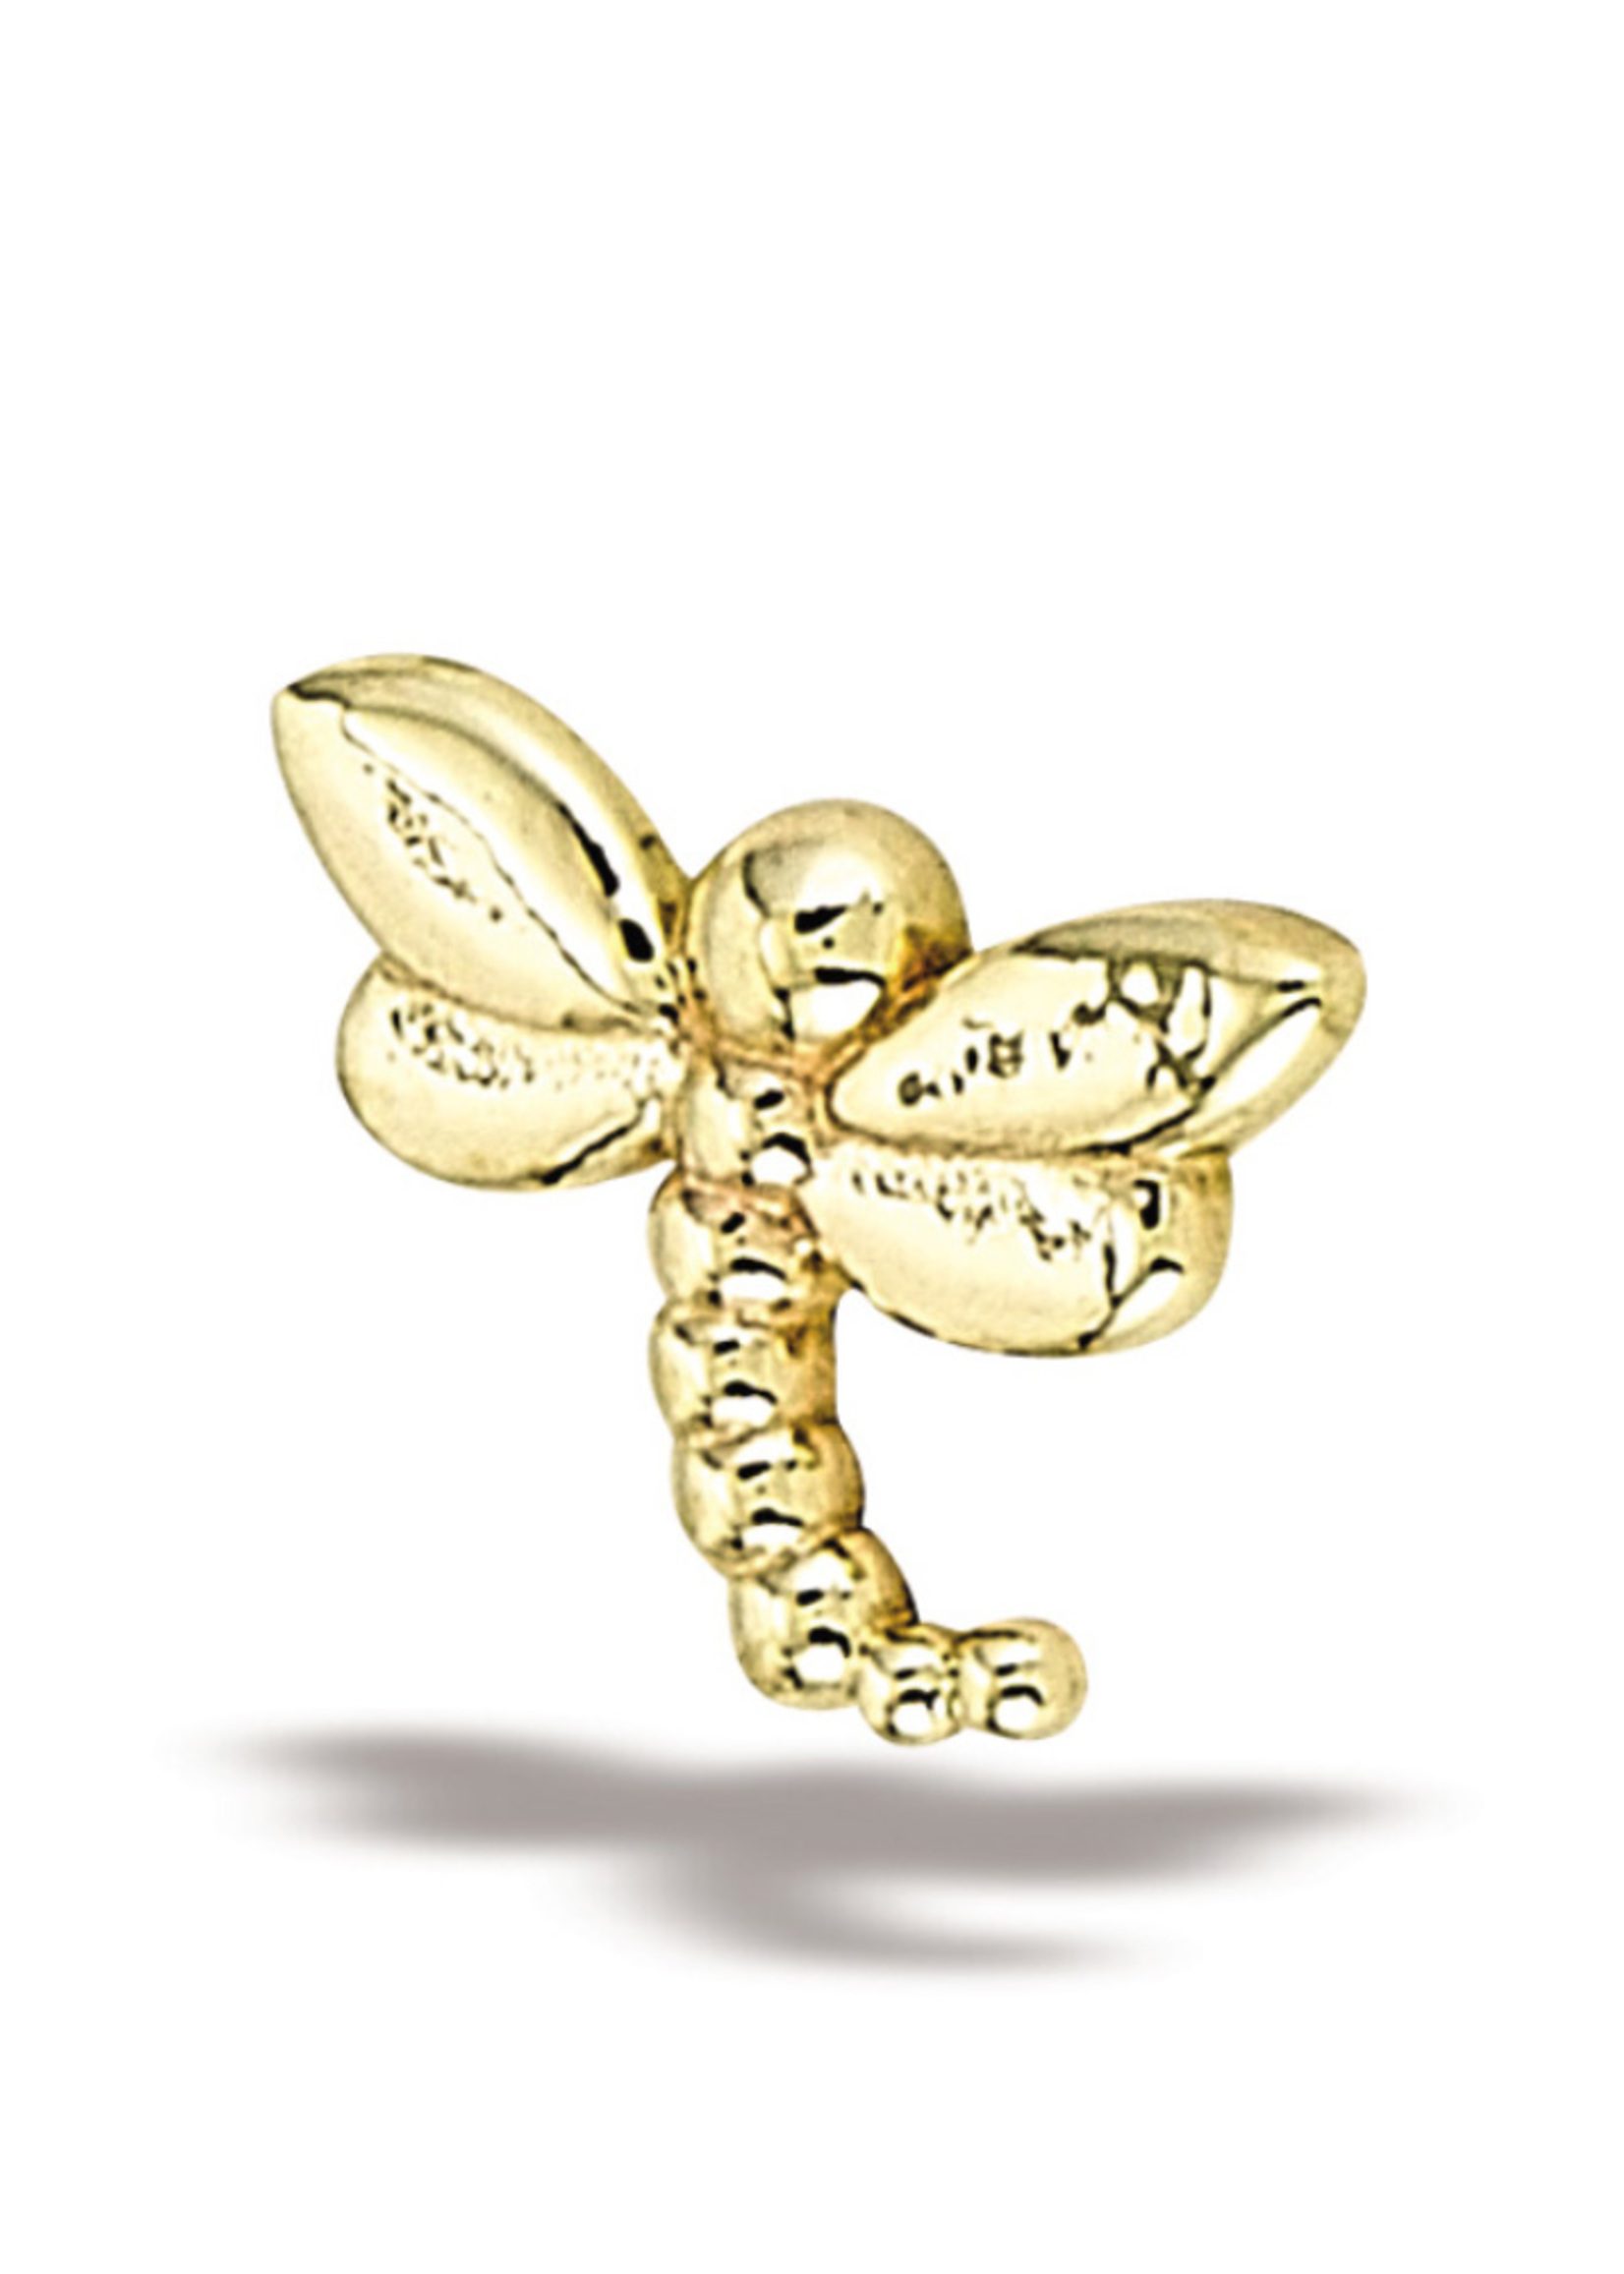 14k YG LG Dragonfly (7.5mmx5.5) Threadless Pin